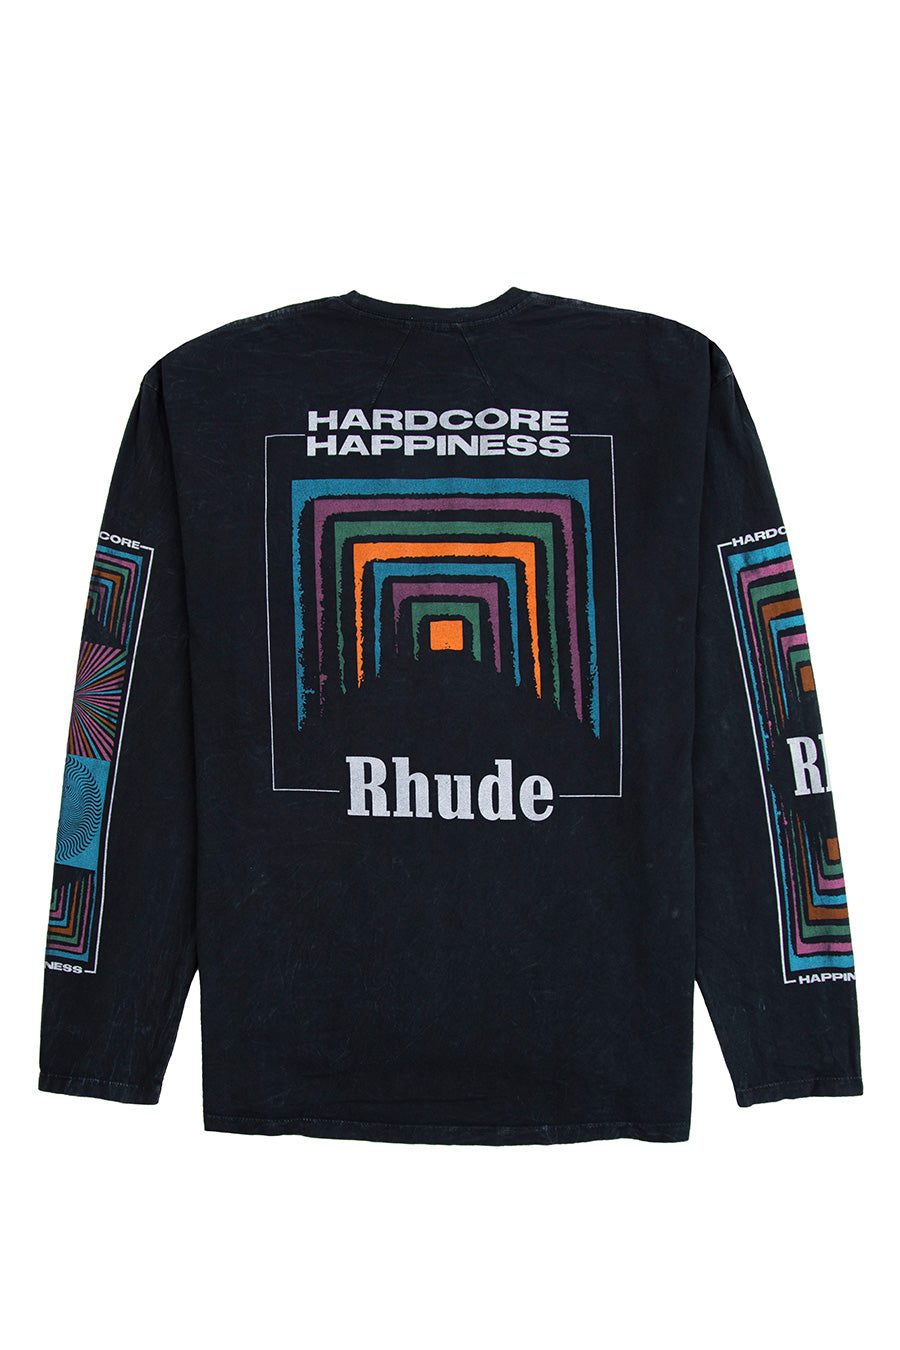 Rhude - Black Box Perspective Long Sleeve T-Shirt | 1032 SPACE